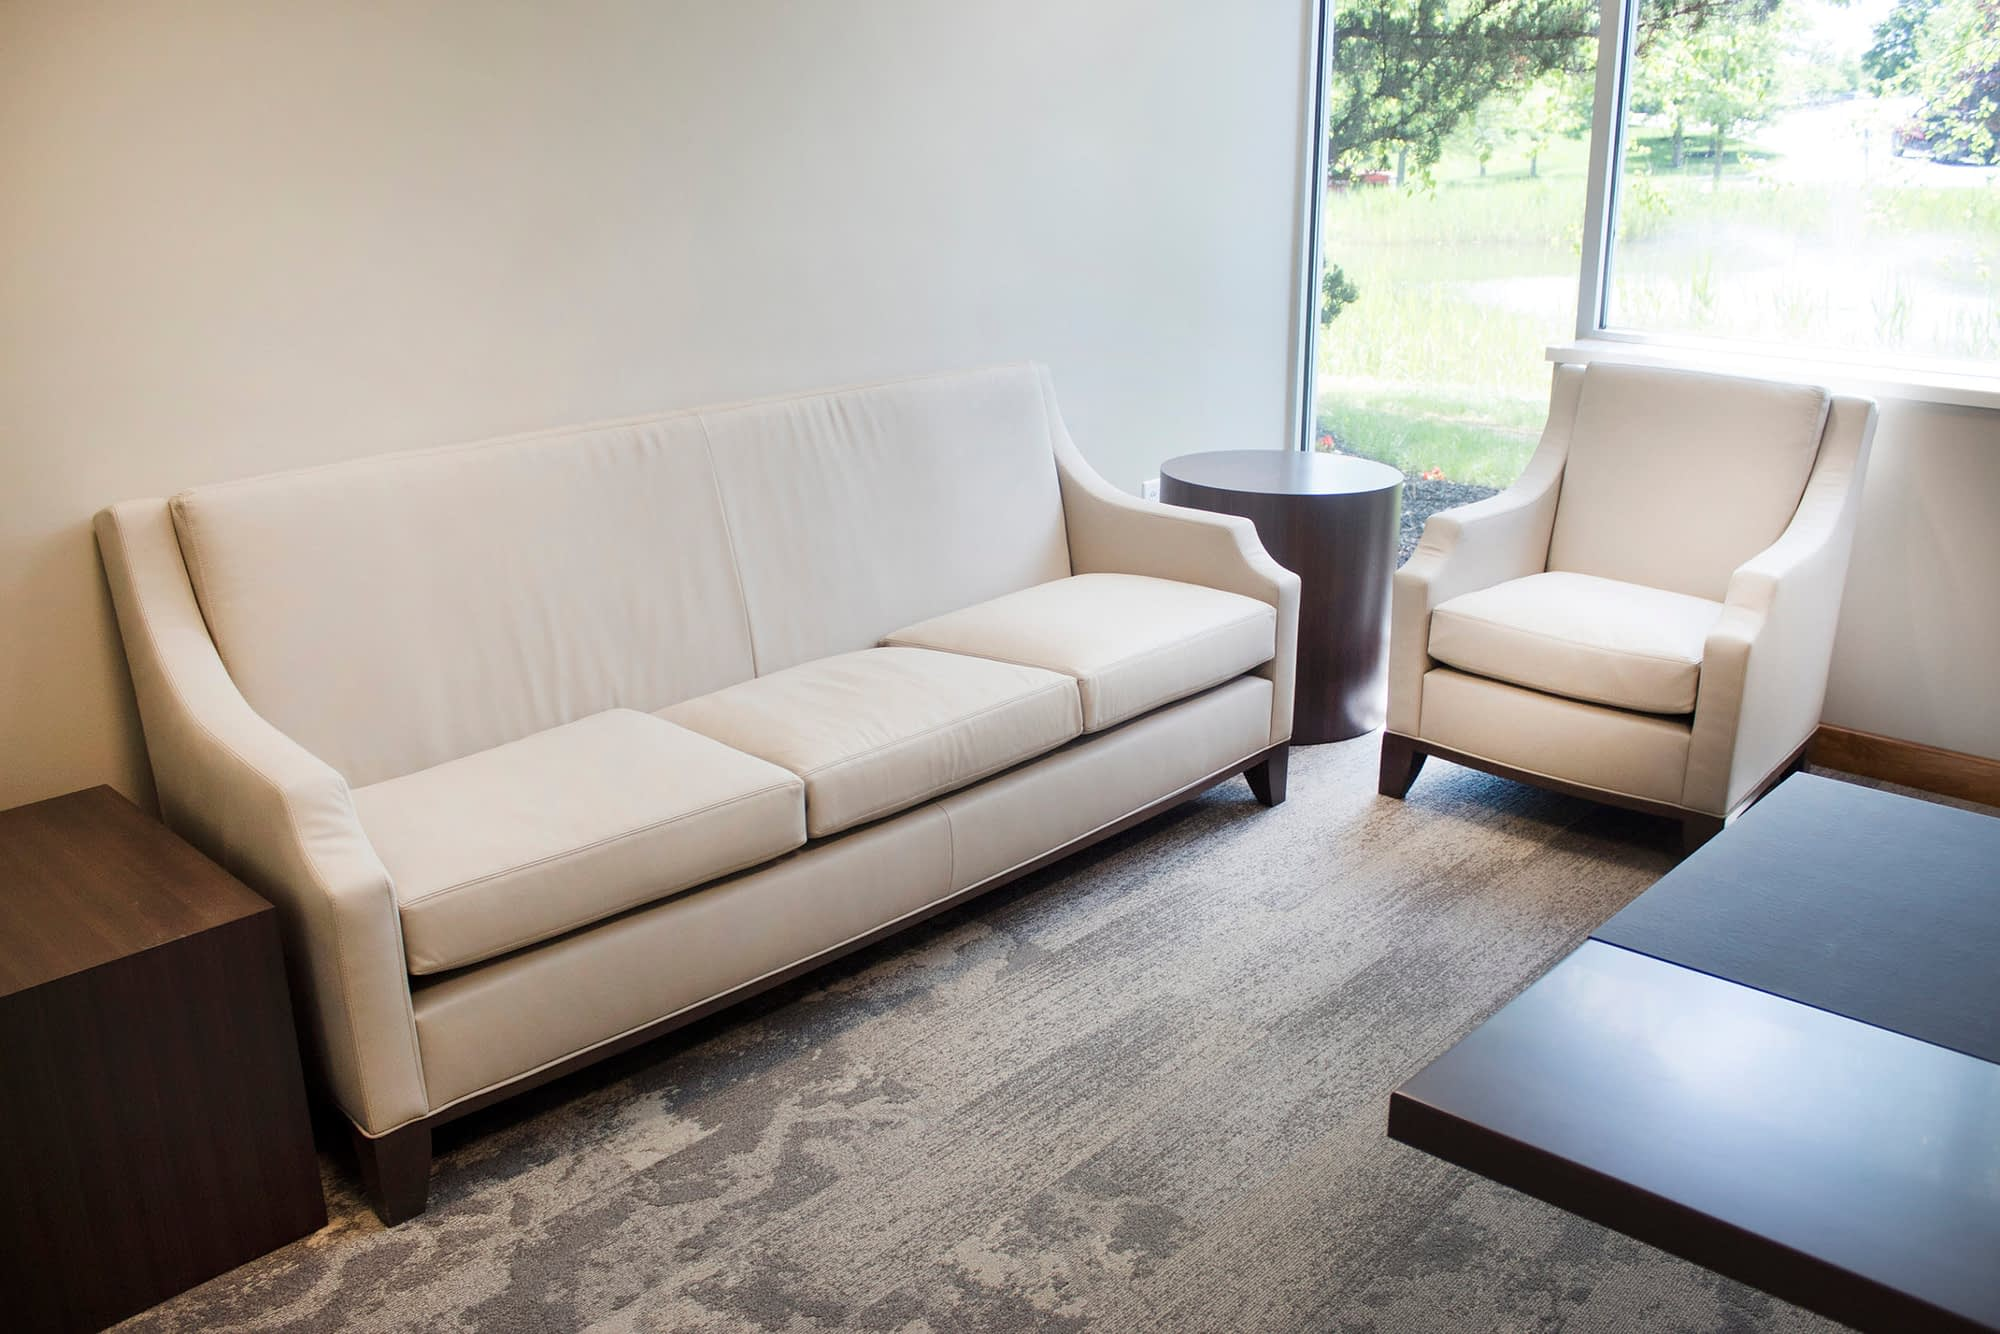 Executive Office with White and Brown Workstation Sofa and Chair